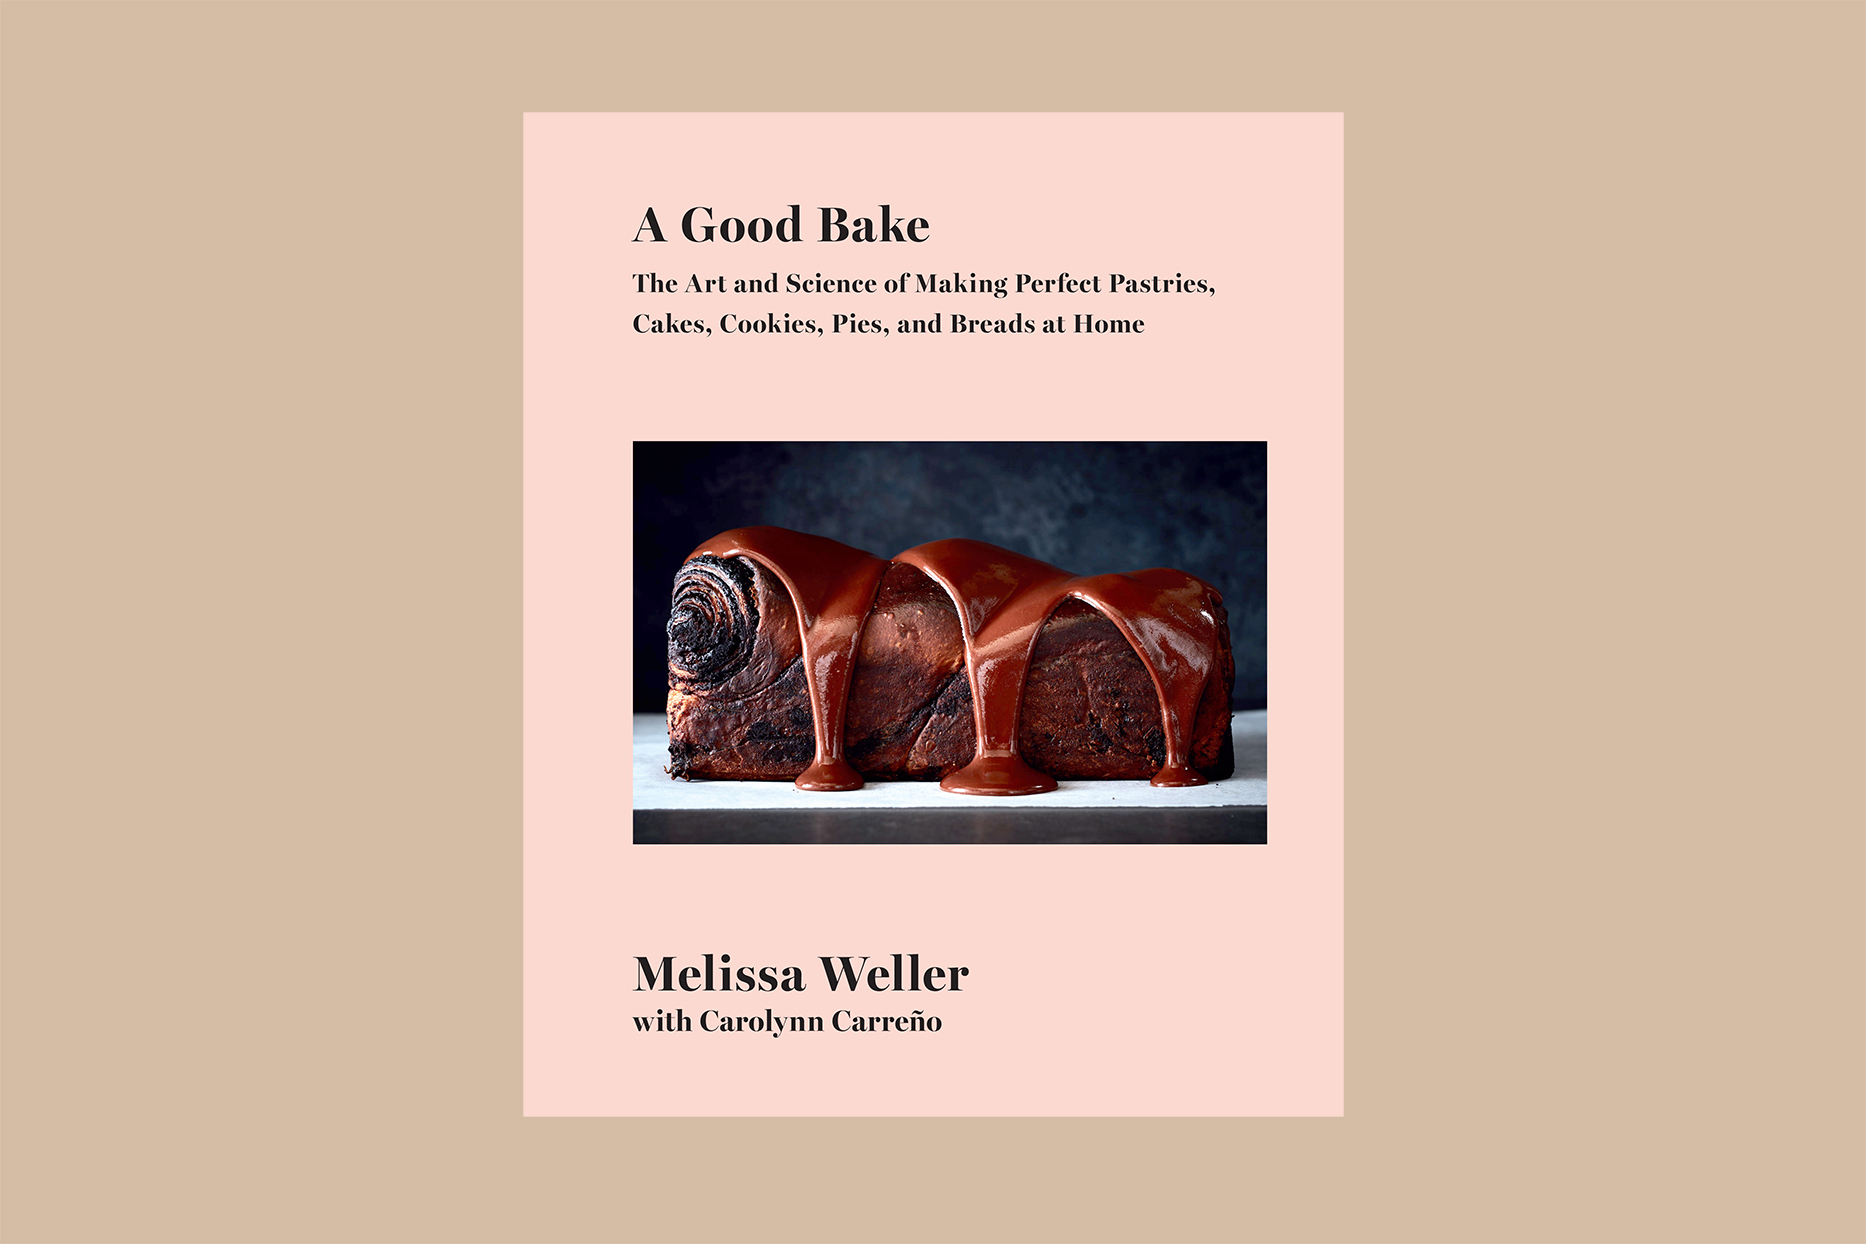 A Good Bake: The Art and Science of Making Perfect Pastries, Cakes, Cookies, Pies, and Breads at Home